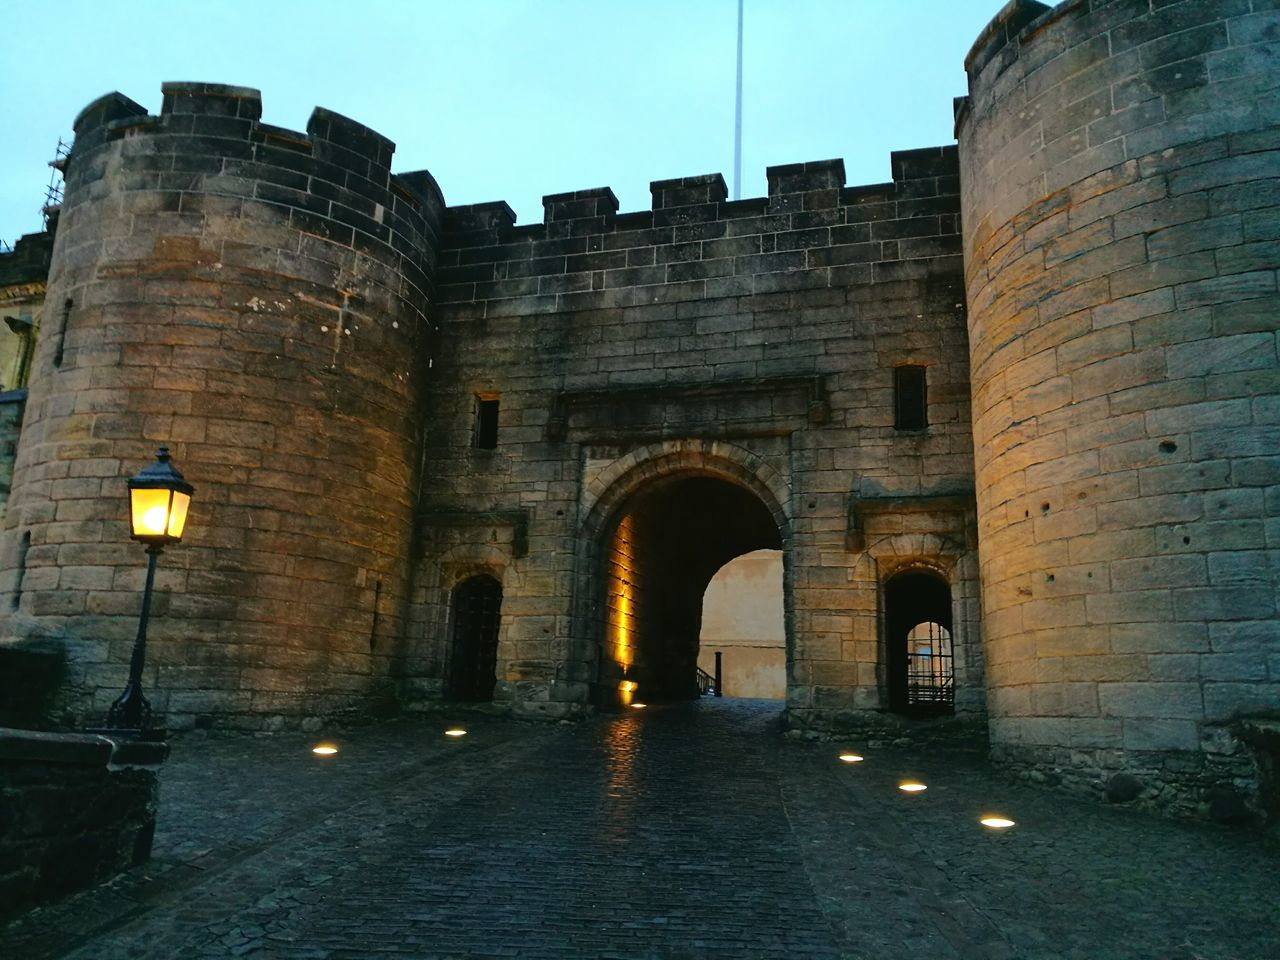 architecture, built structure, building exterior, arch, history, illuminated, castle, outdoors, no people, sky, day